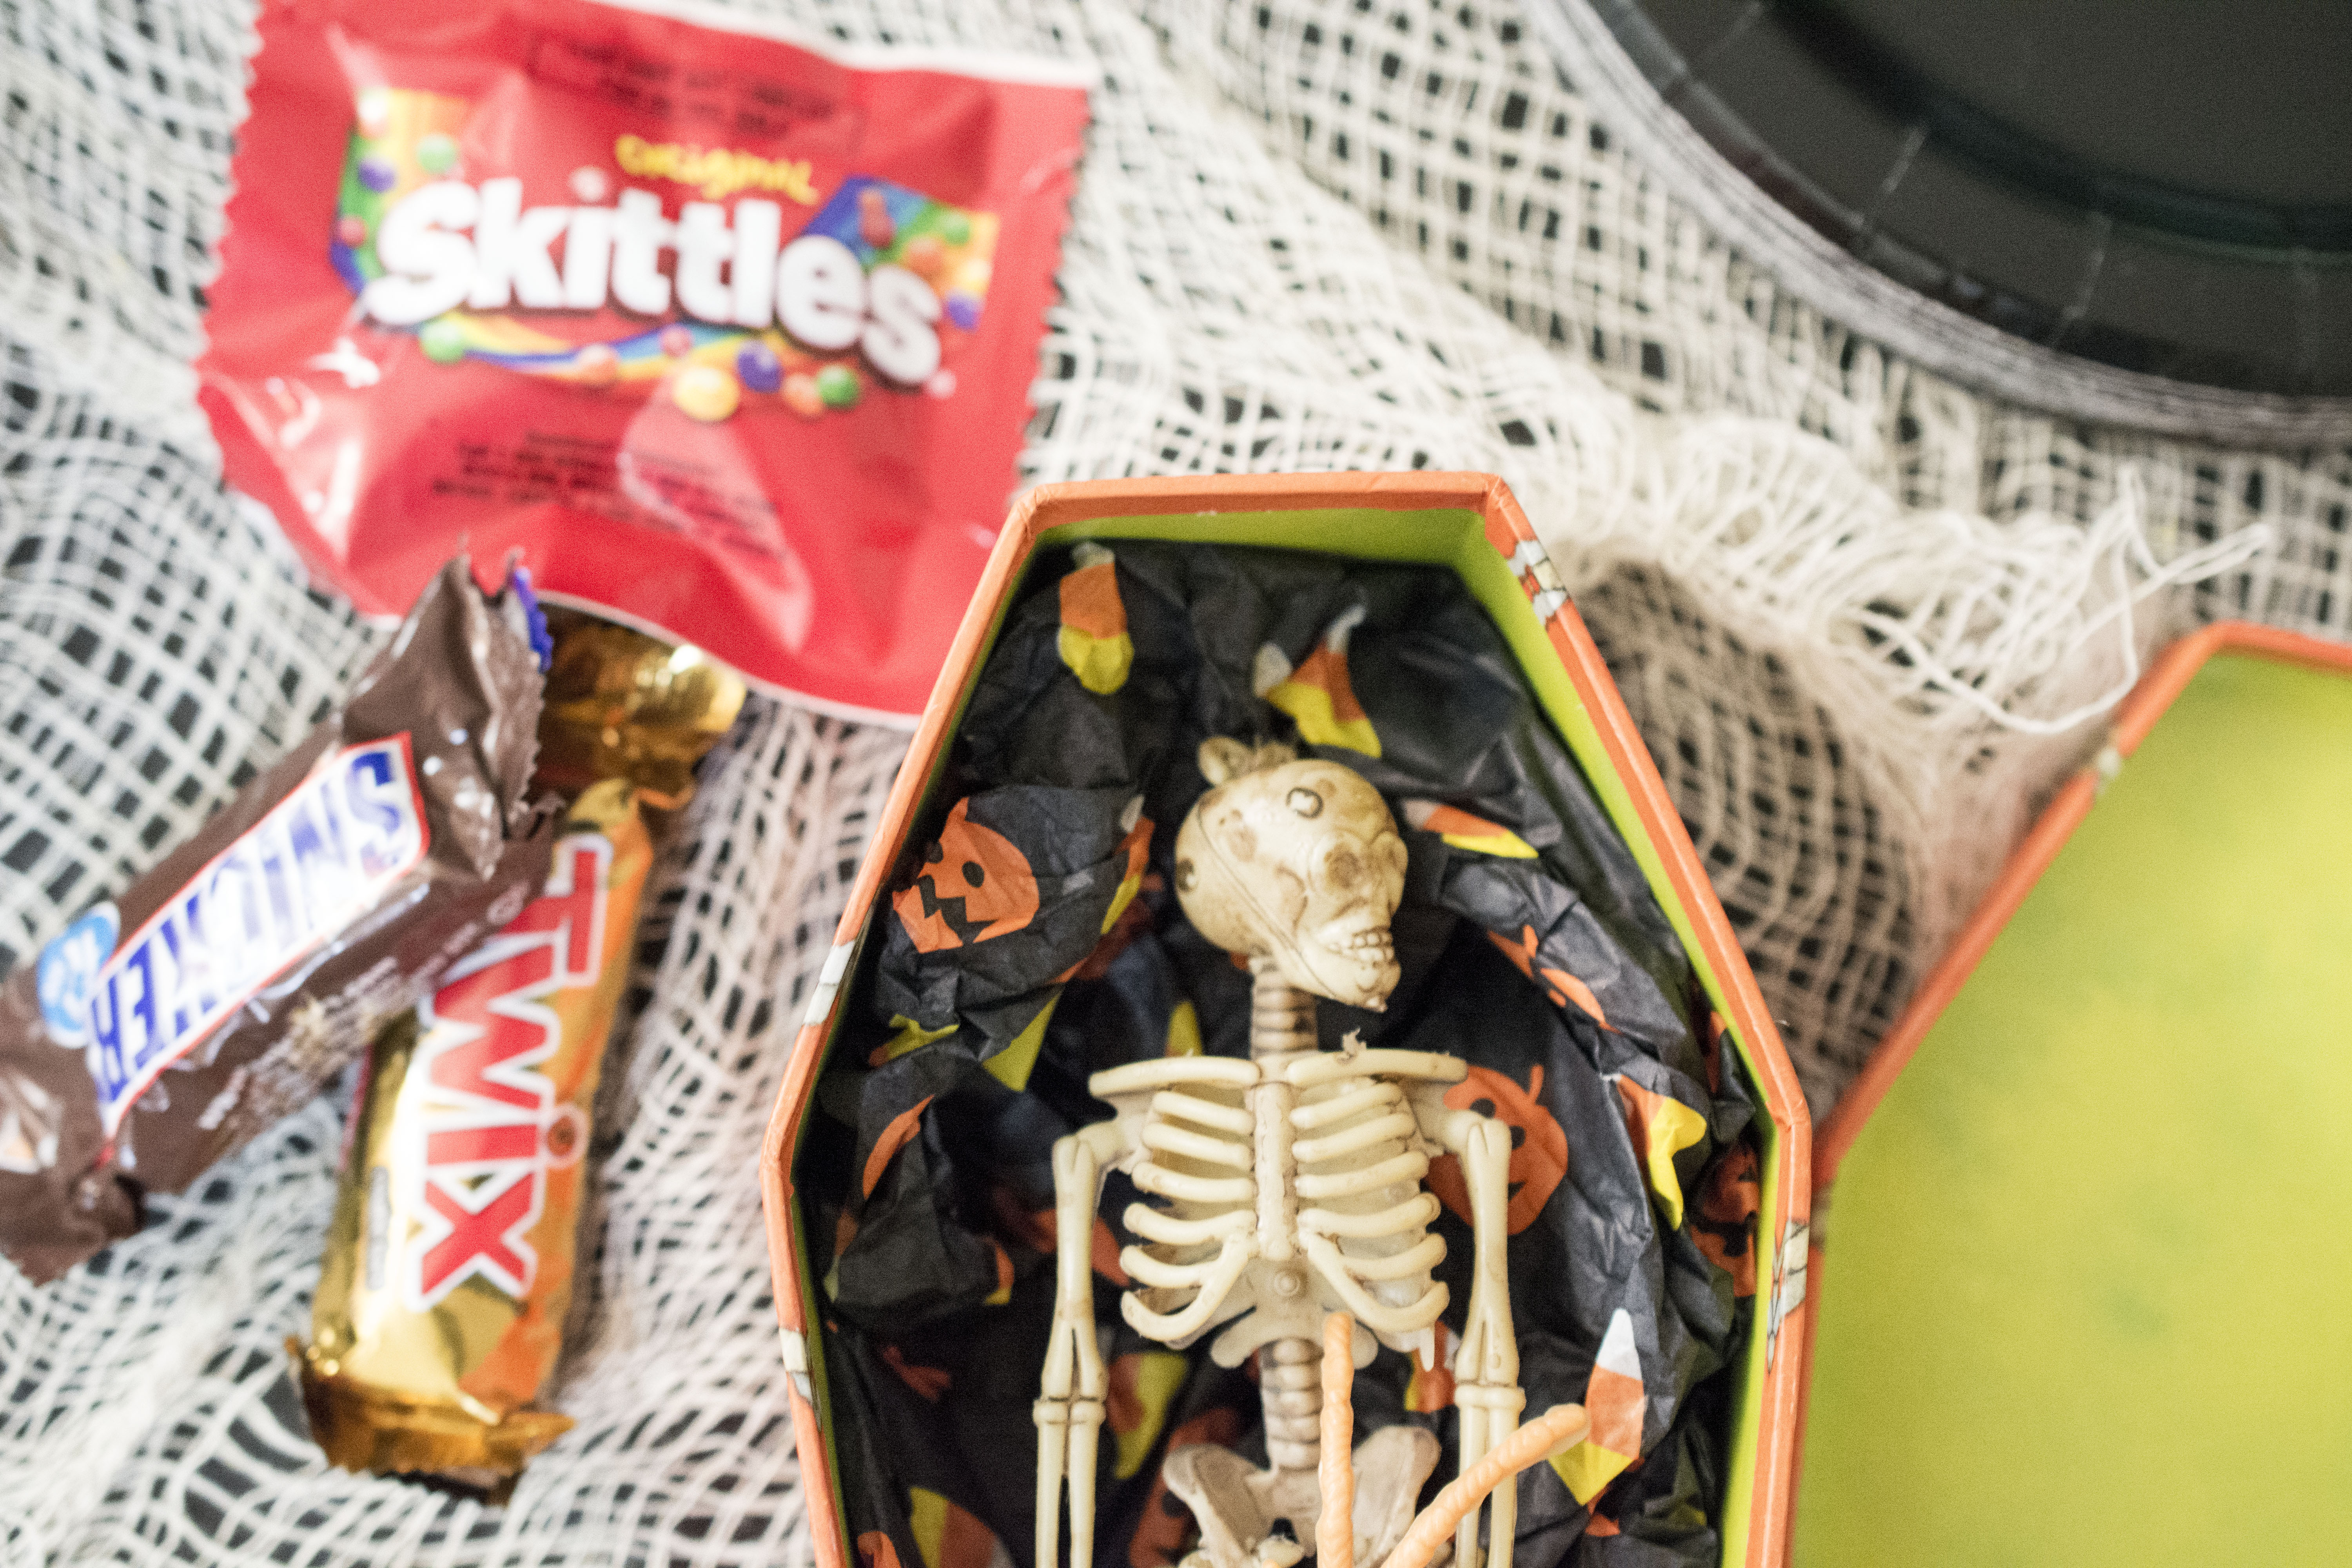 Essentially Erika » Blog Archive A How-To Halloween Party + DIY ...